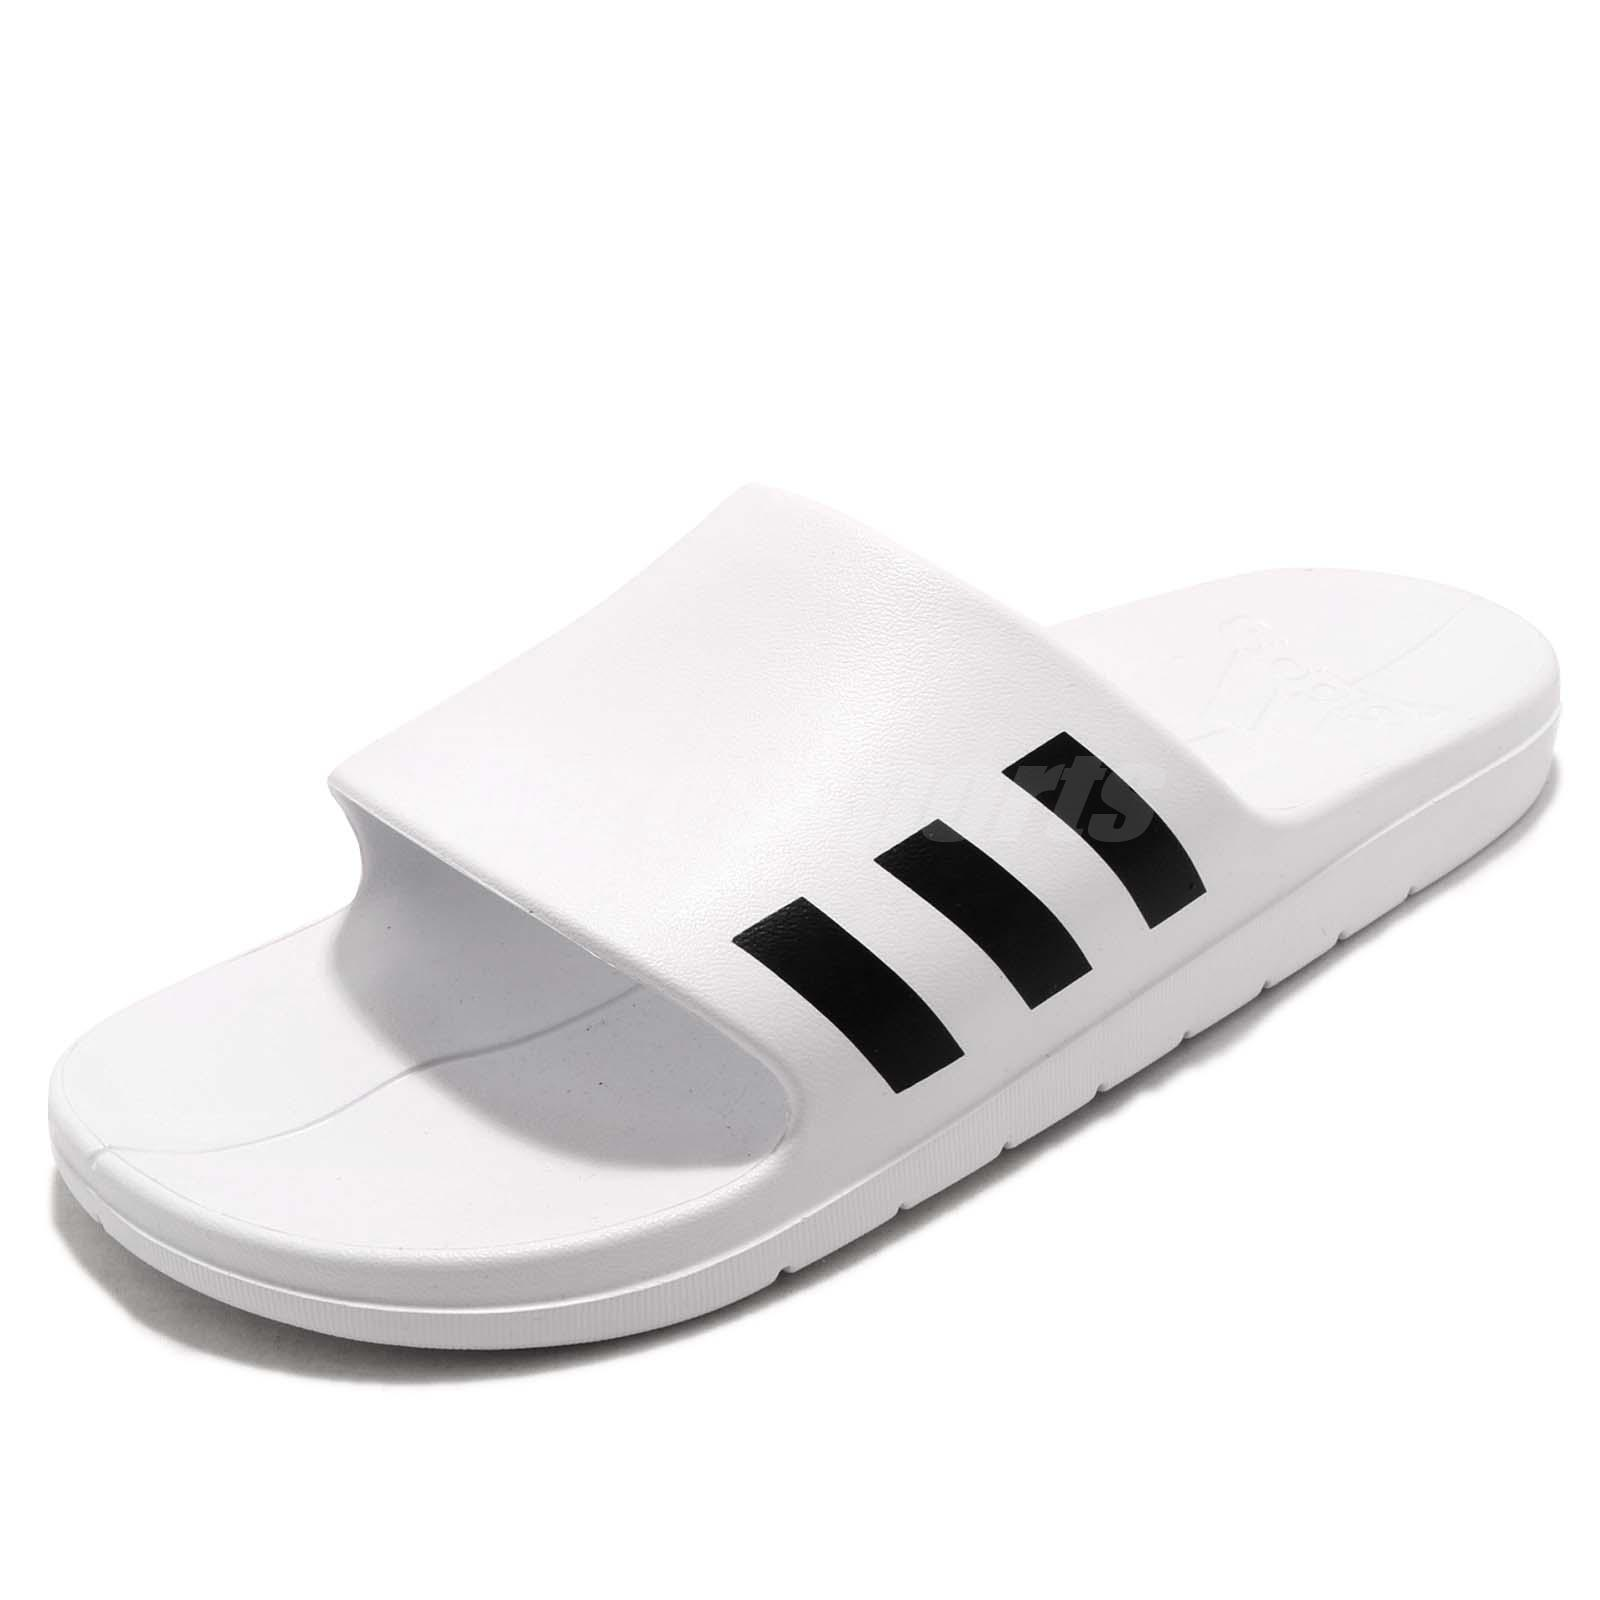 21fbee3a7ed adidas Aqualette White Black Men Sports Sandals Slides Slippers CG3538